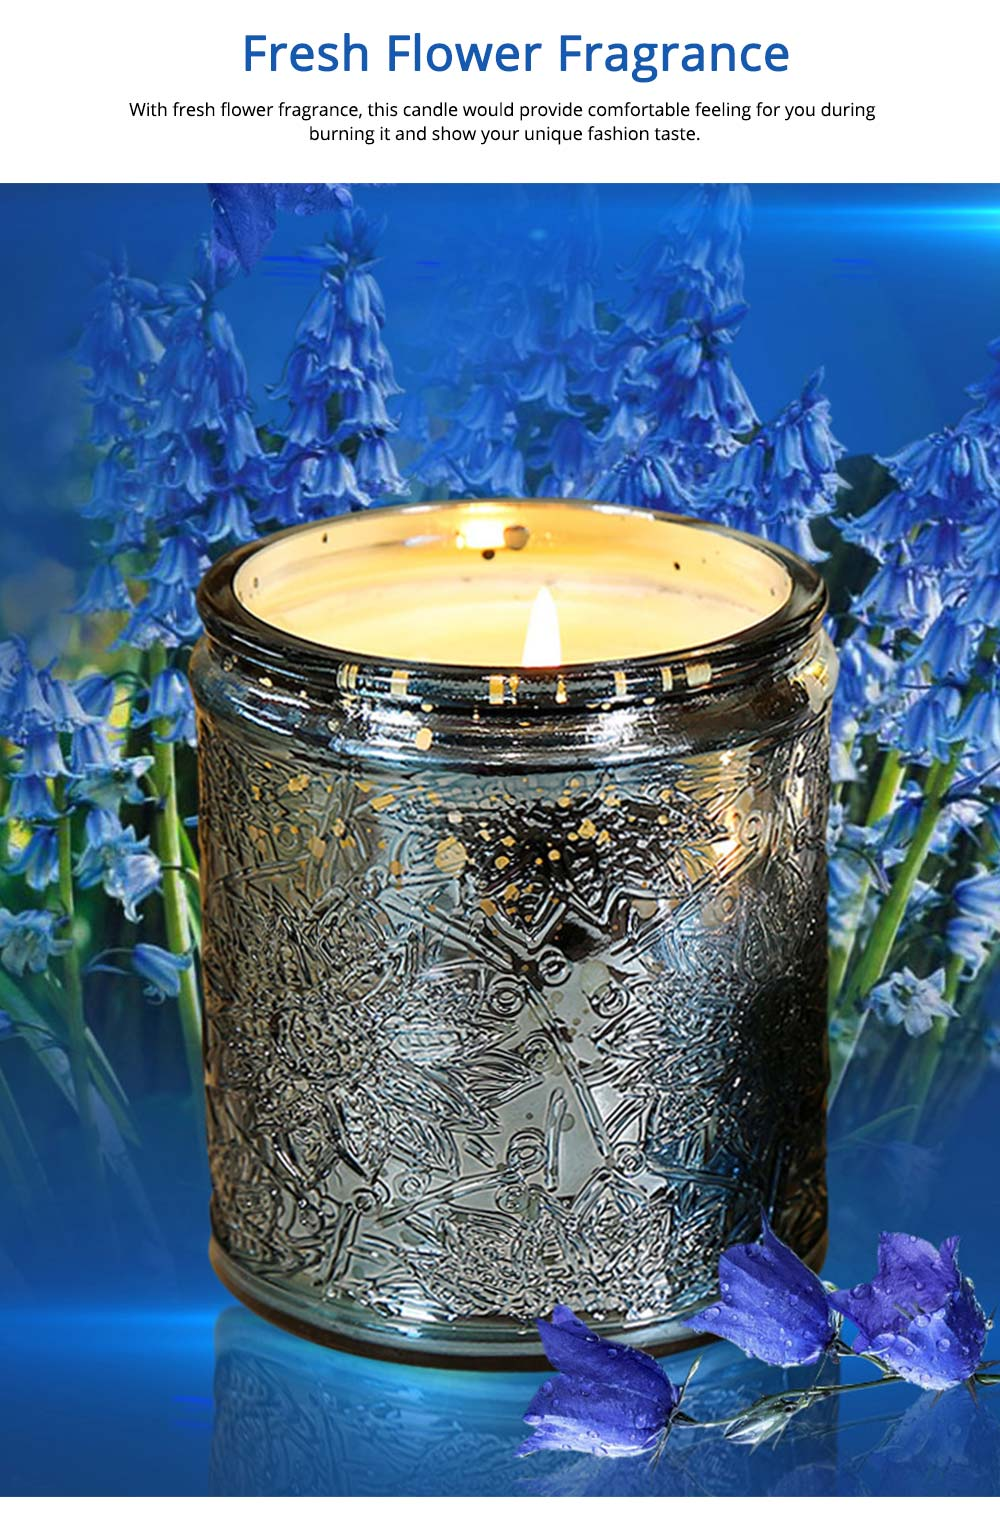 Essential Bluebell Fragrance Oil Smokeless Scented Candles, Romantic Home Decoration Soy Wax Candles Gift 11